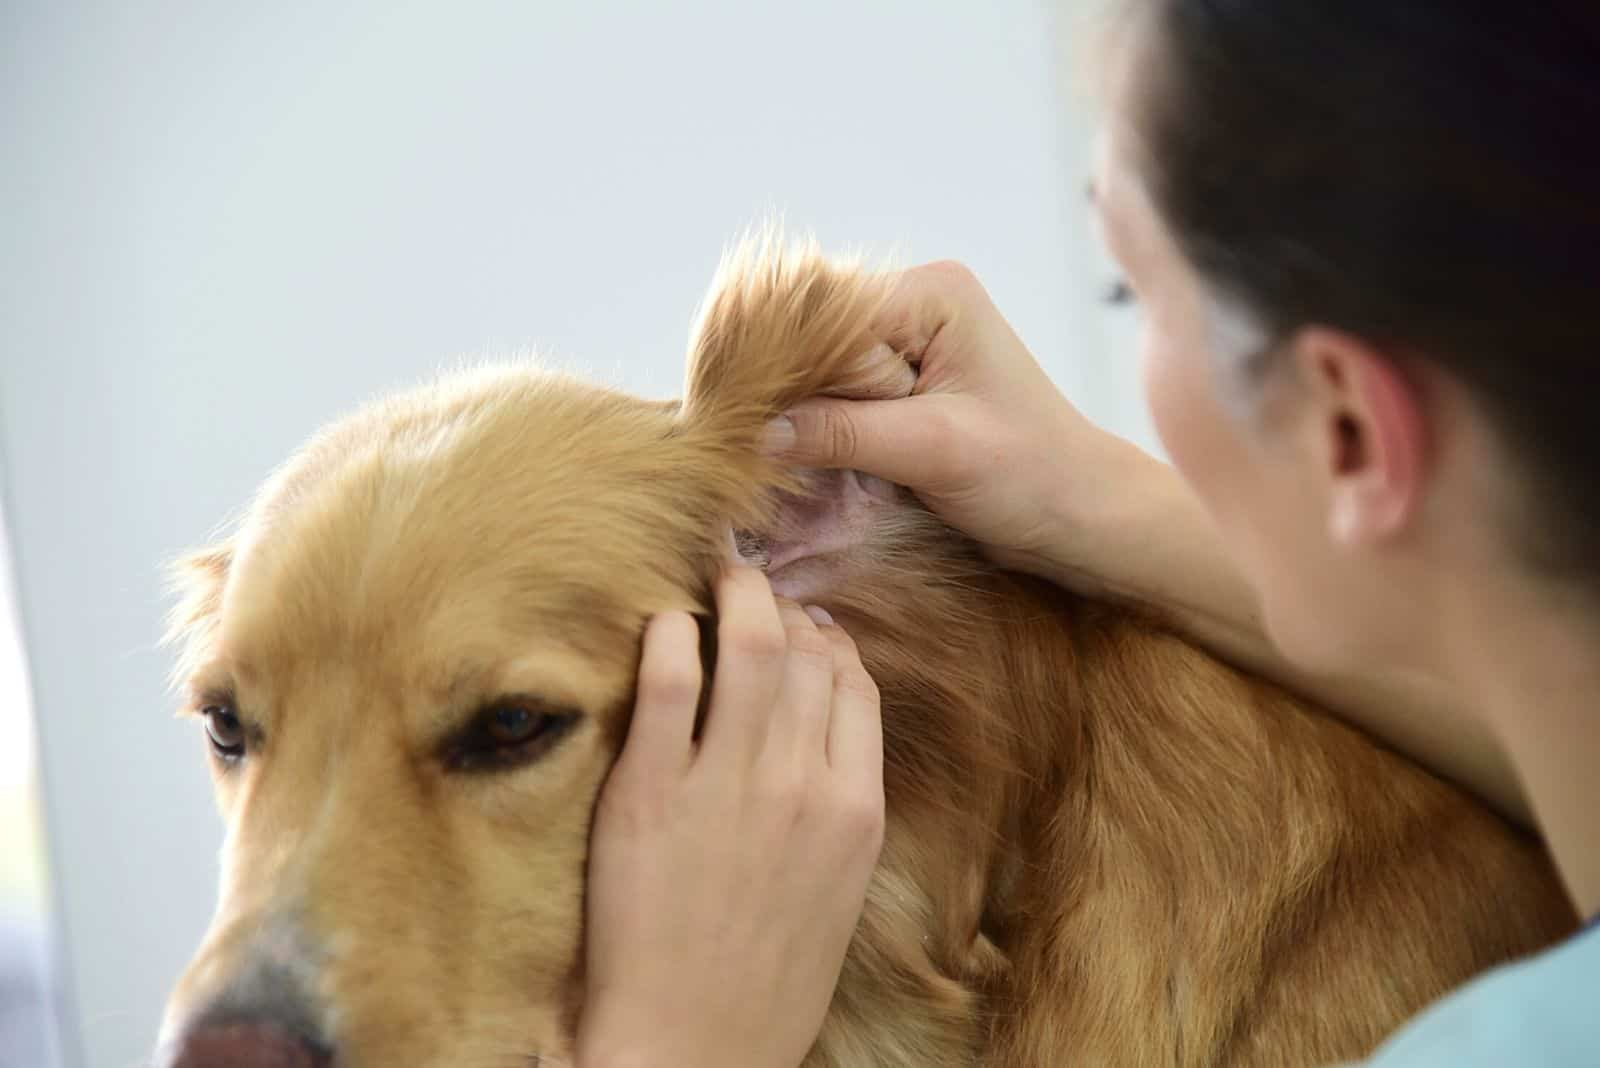 the woman examines the dog's ear